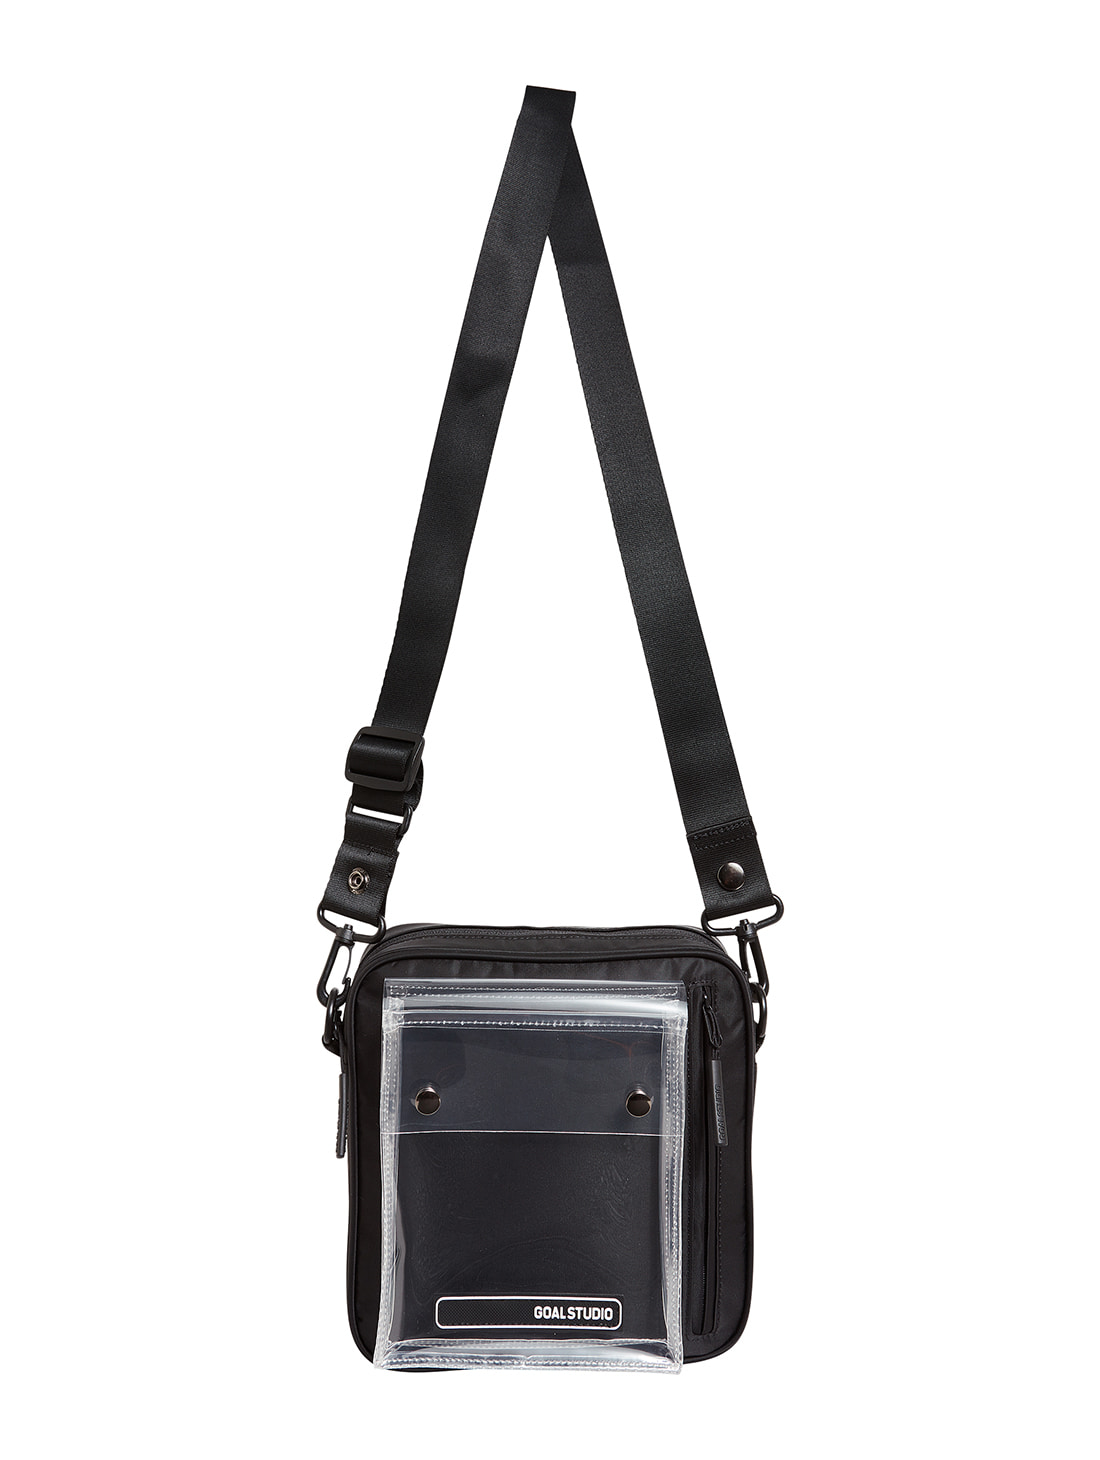 GOALSTUDIO LOGO WAPPEN SMALL BAG - BLACK